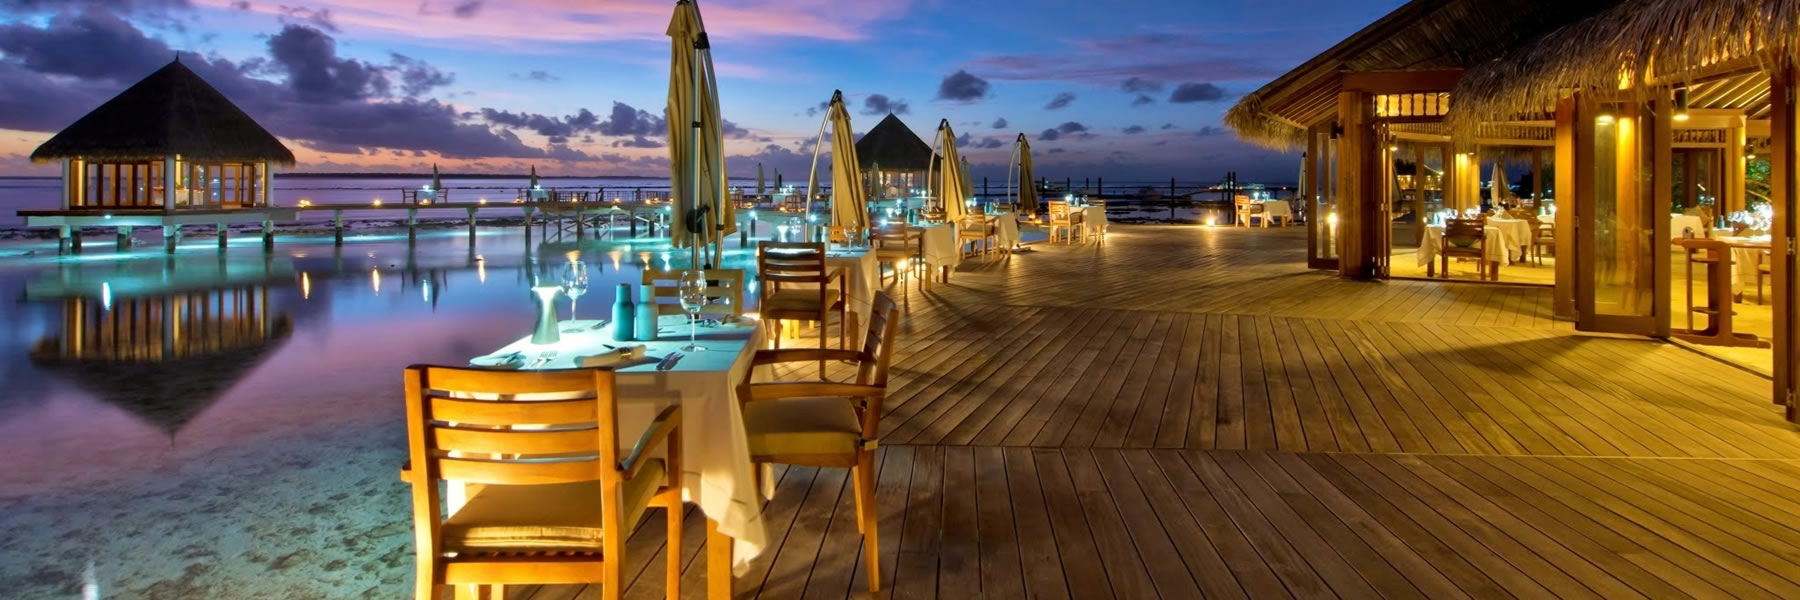 Maldives Nightlife - Hotel Resorts in Maldives - Hideaway Beach Resort